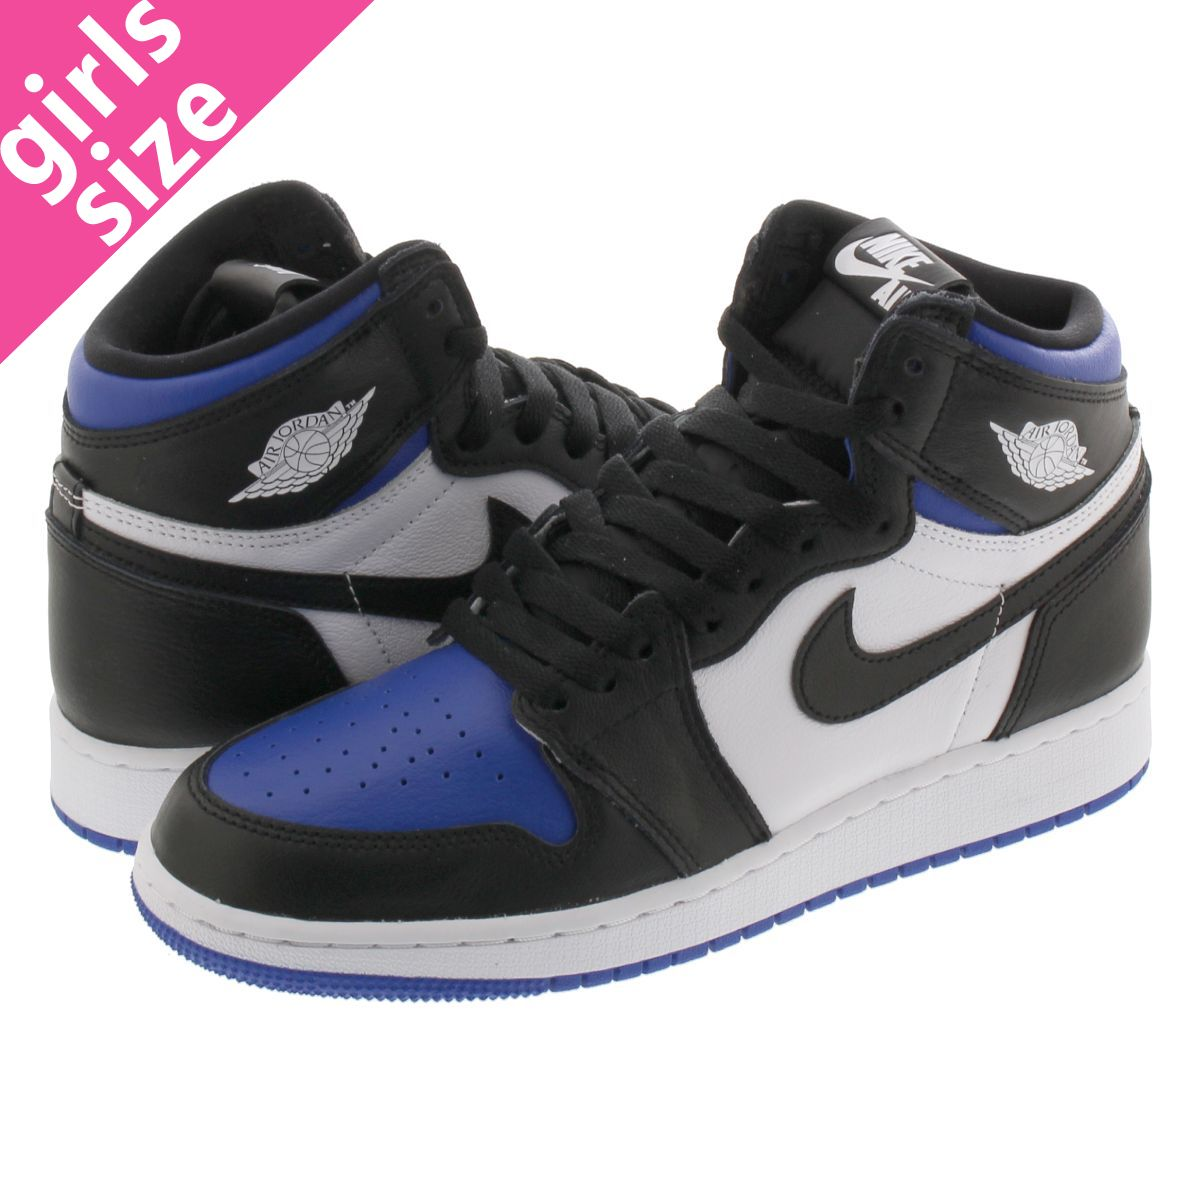 NIKE AIR JORDAN 1 RETRO HIGH OG GS 【ROYAL TOE】 ナイキ エア ジョーダン 1 レトロ ハイ OG GS BLACK/WHITE/GAME ROYAL 575441-041